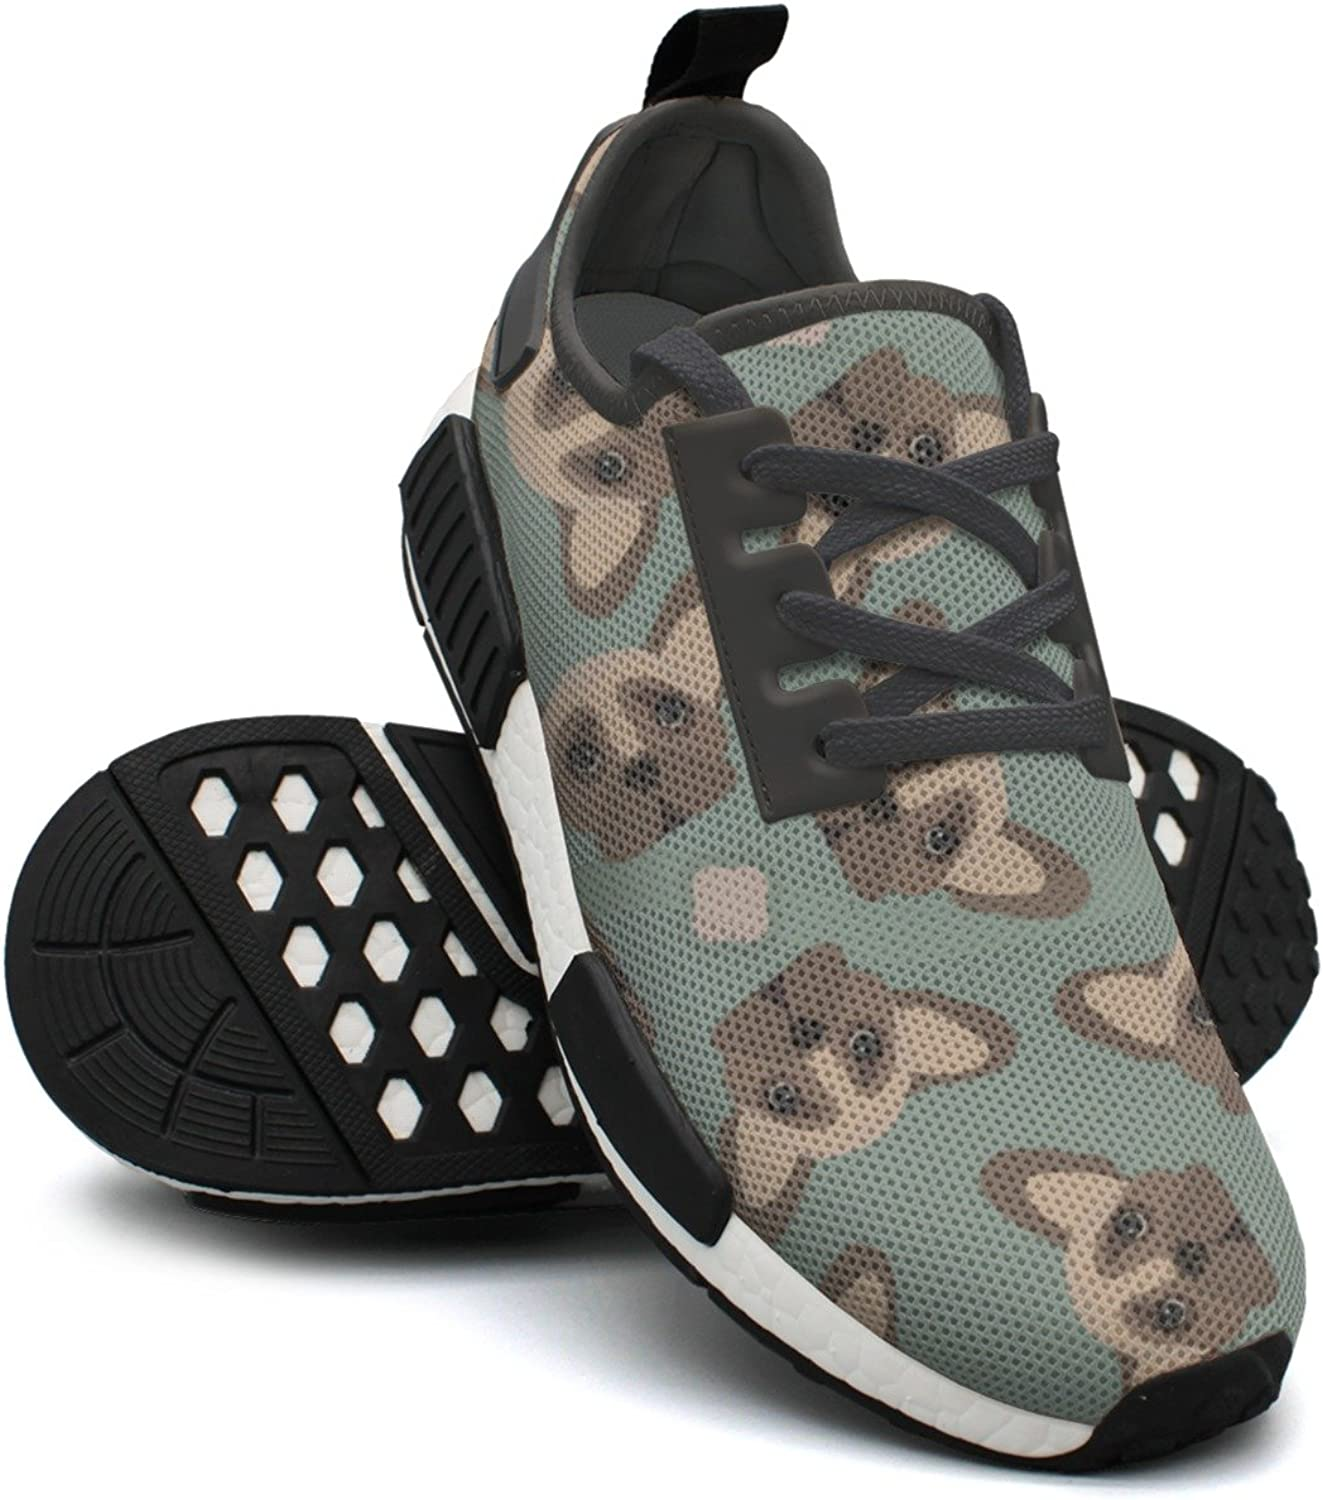 French Bulldog Womans Running shoes Nmd Gym Training shoes